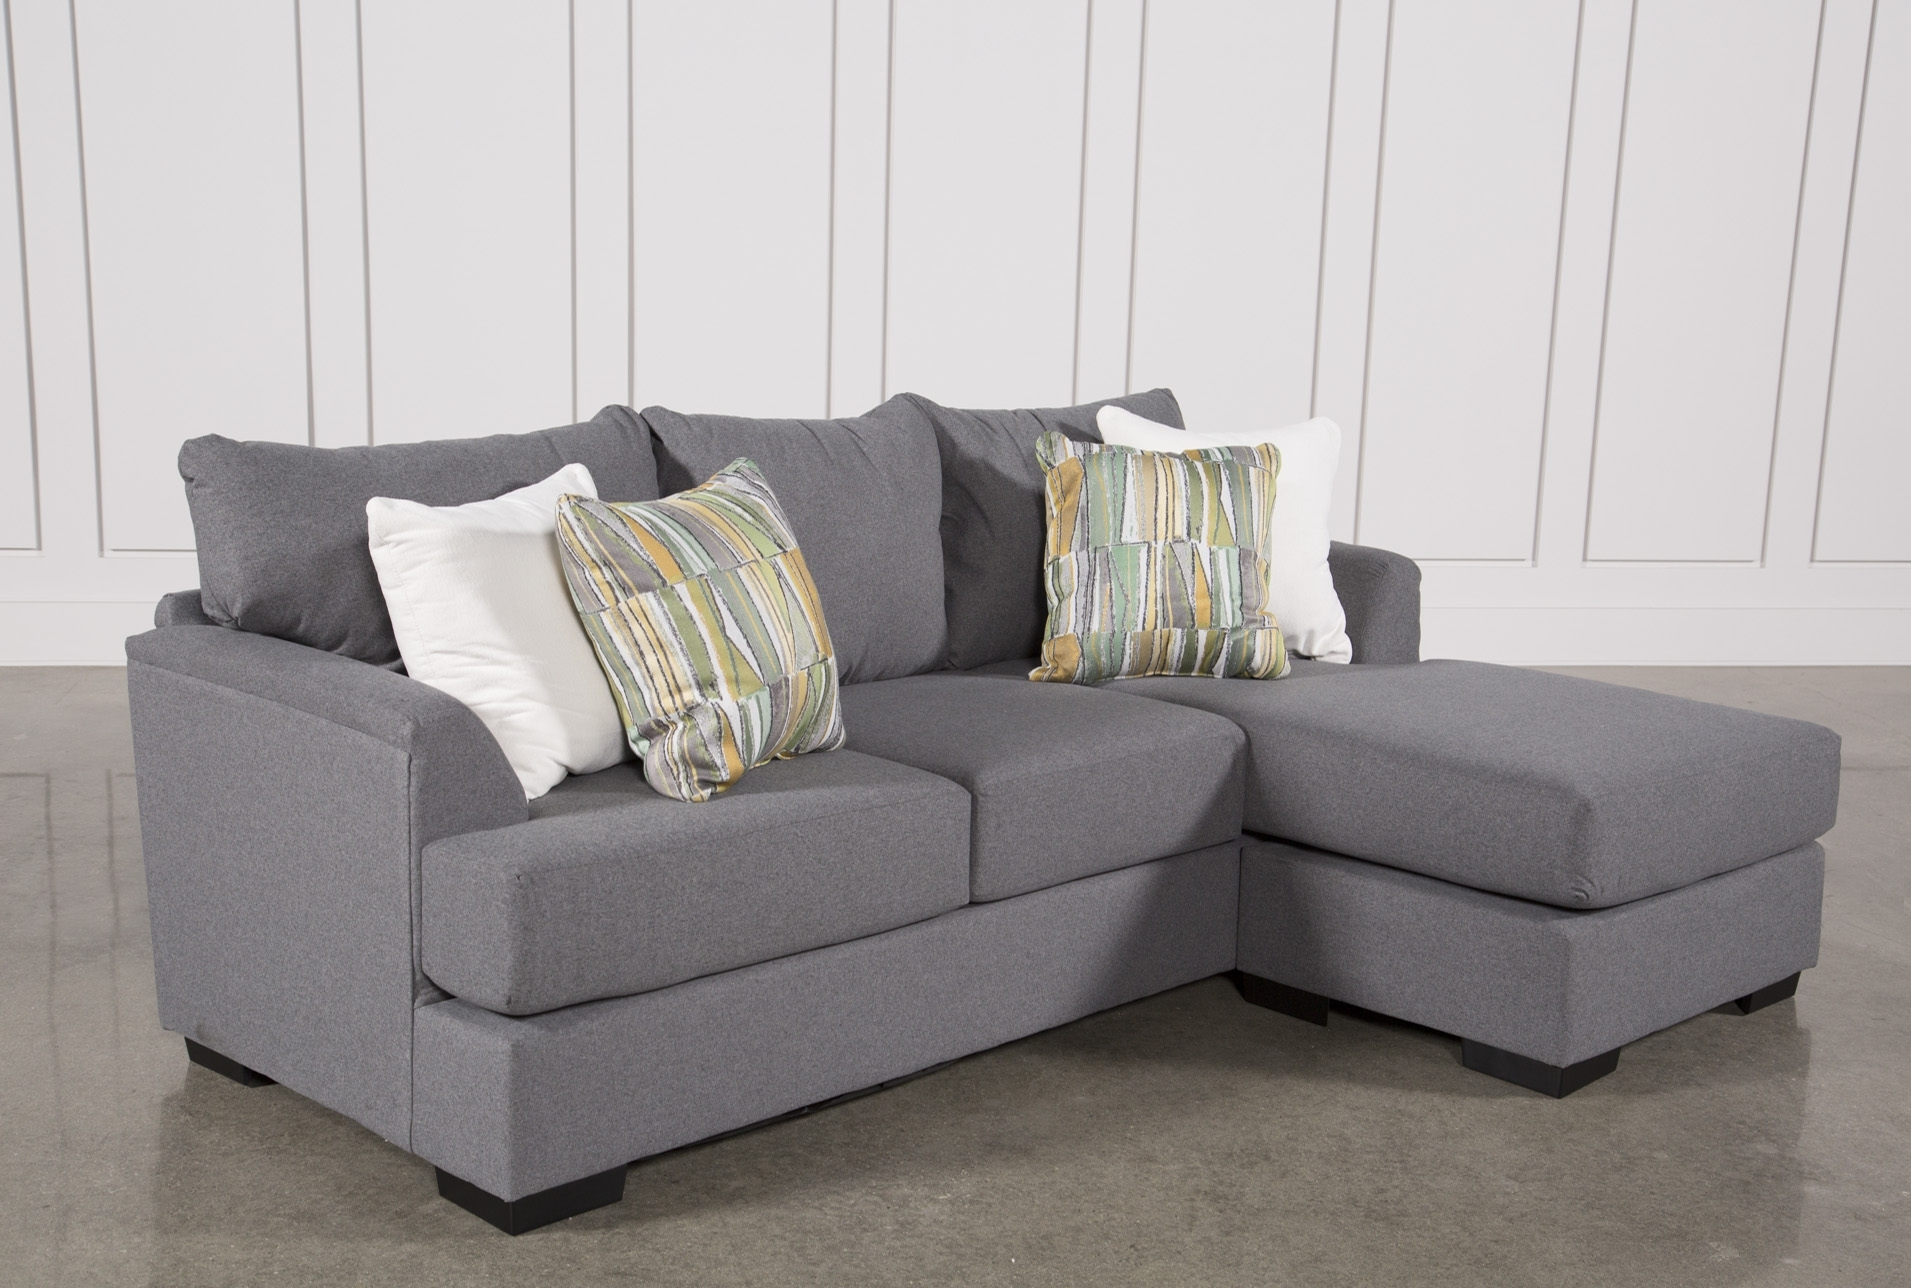 Keegan Sofa W/reversible Chaise | Products | Pinterest | Products For Egan Ii Cement Sofa Sectionals With Reversible Chaise (View 5 of 25)